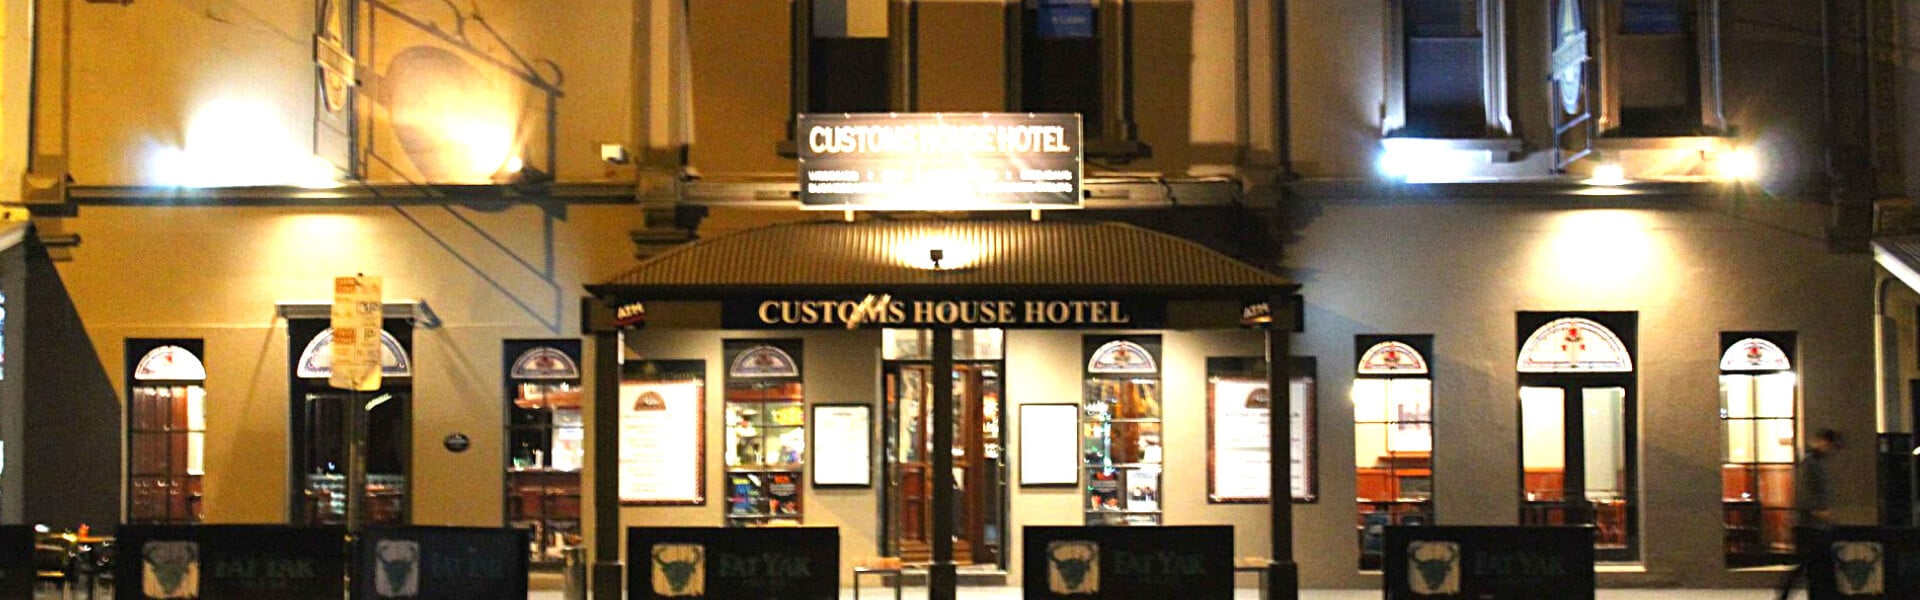 Our Rooms at Customs House Hotel